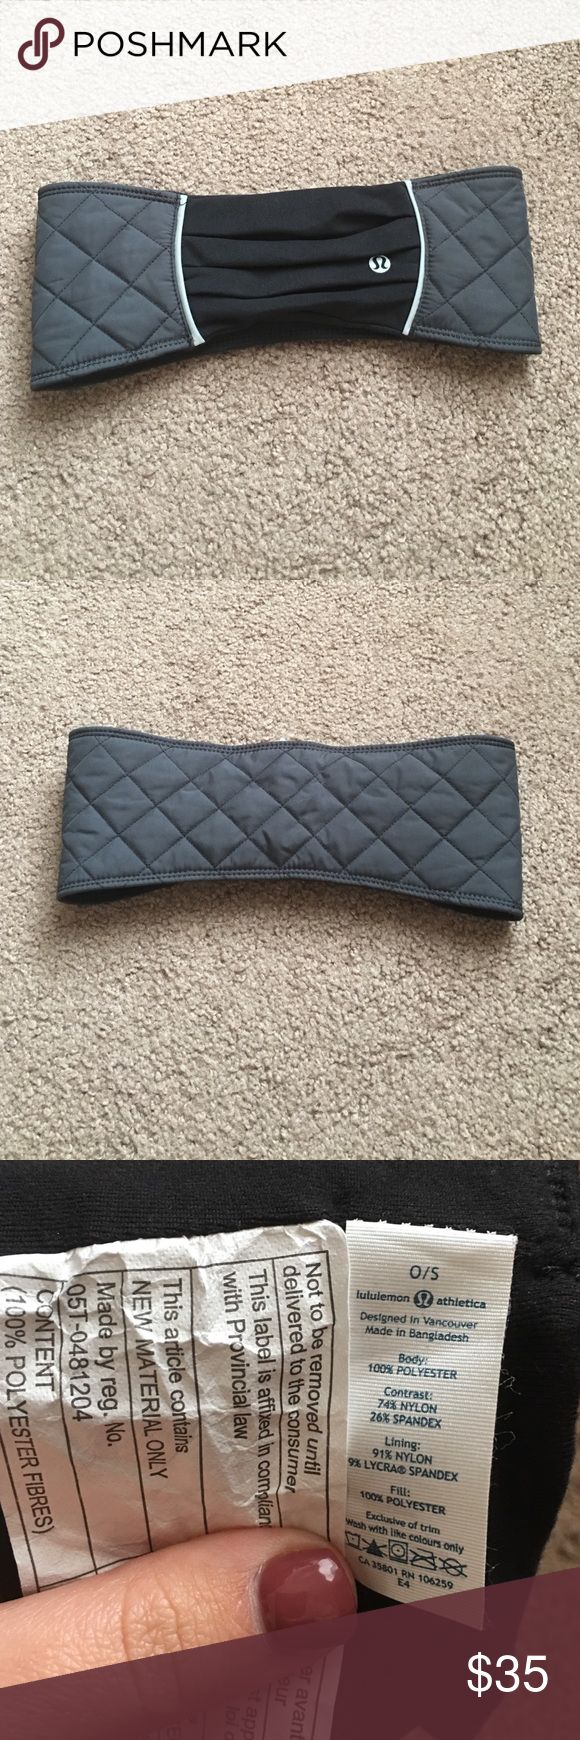 Lululemon Athletica headband New without tags - brand new and never used. OS fits all. lululemon athletica Accessories Hair Accessories